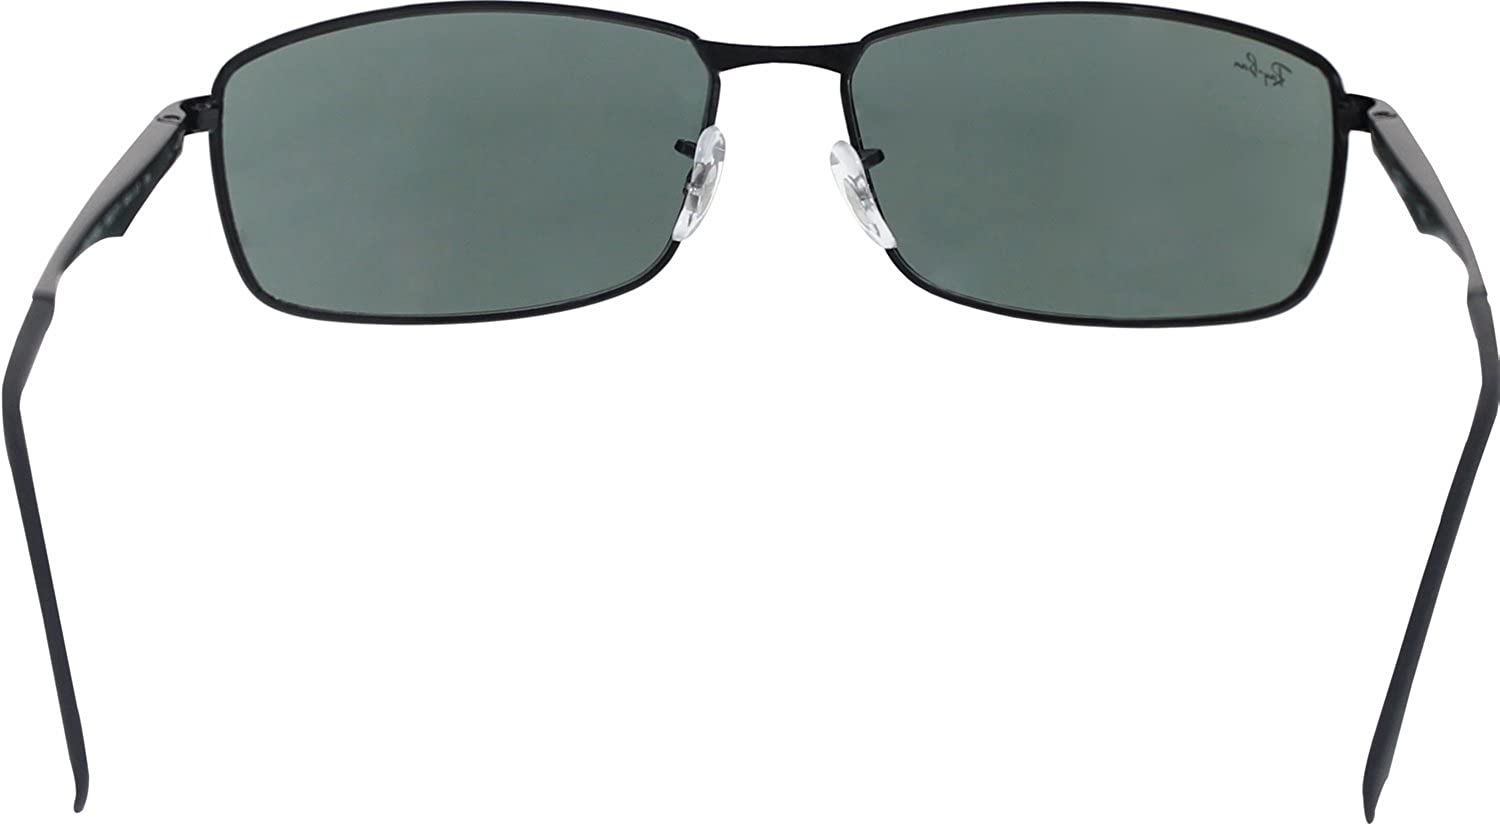 Ray-Ban Sonnenbrille (RB 3498 002/71 64): Ray-Ban: Amazon.co.uk: Clothing